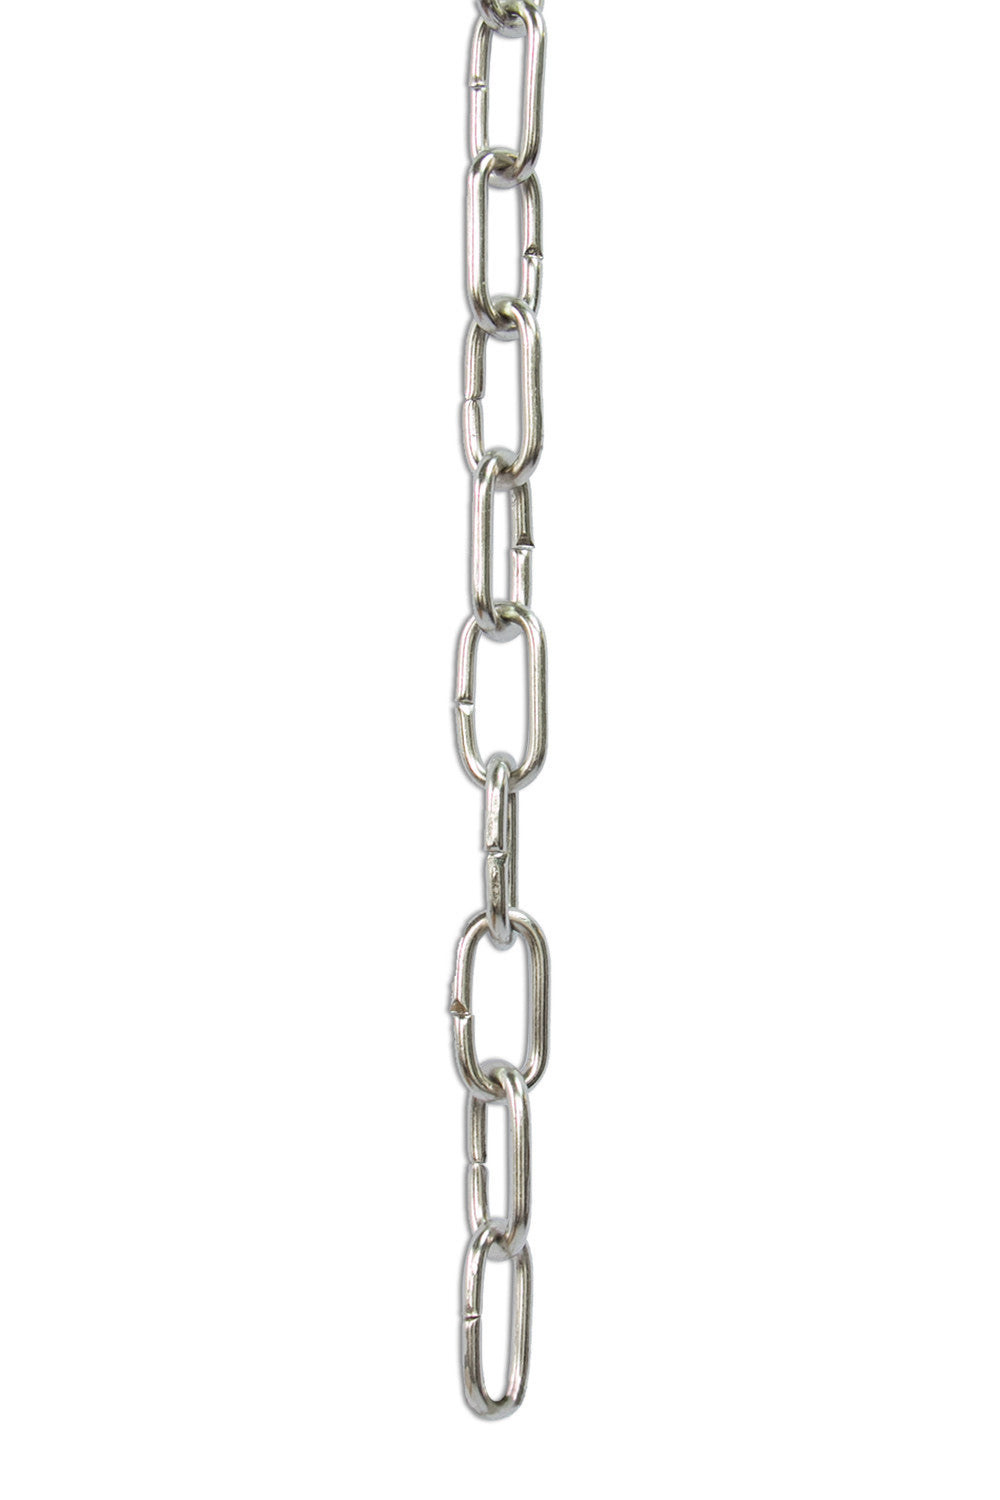 POLISHED NICKEL [Chain 07] Standard Link Chandelier Chain Product from RCH Hardware's Decorative CHANDELIER CHAIN Collection for interior decorating & home decor. - 2